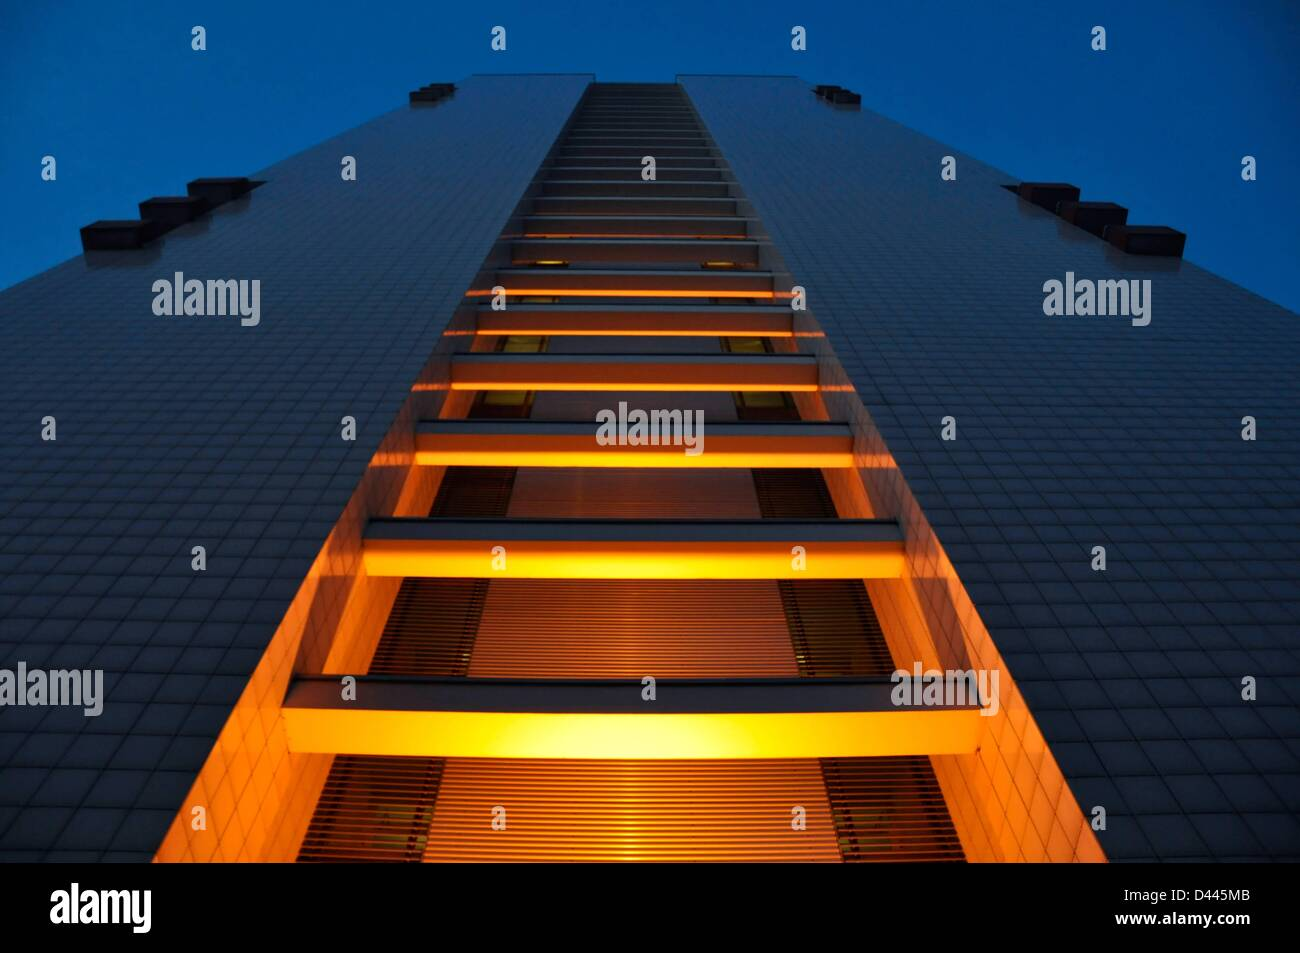 The illumanted front of a skyscraper during the blue hour in Leipziger Strasse in Berlin, Germany, 24 February 2011. - Stock Image